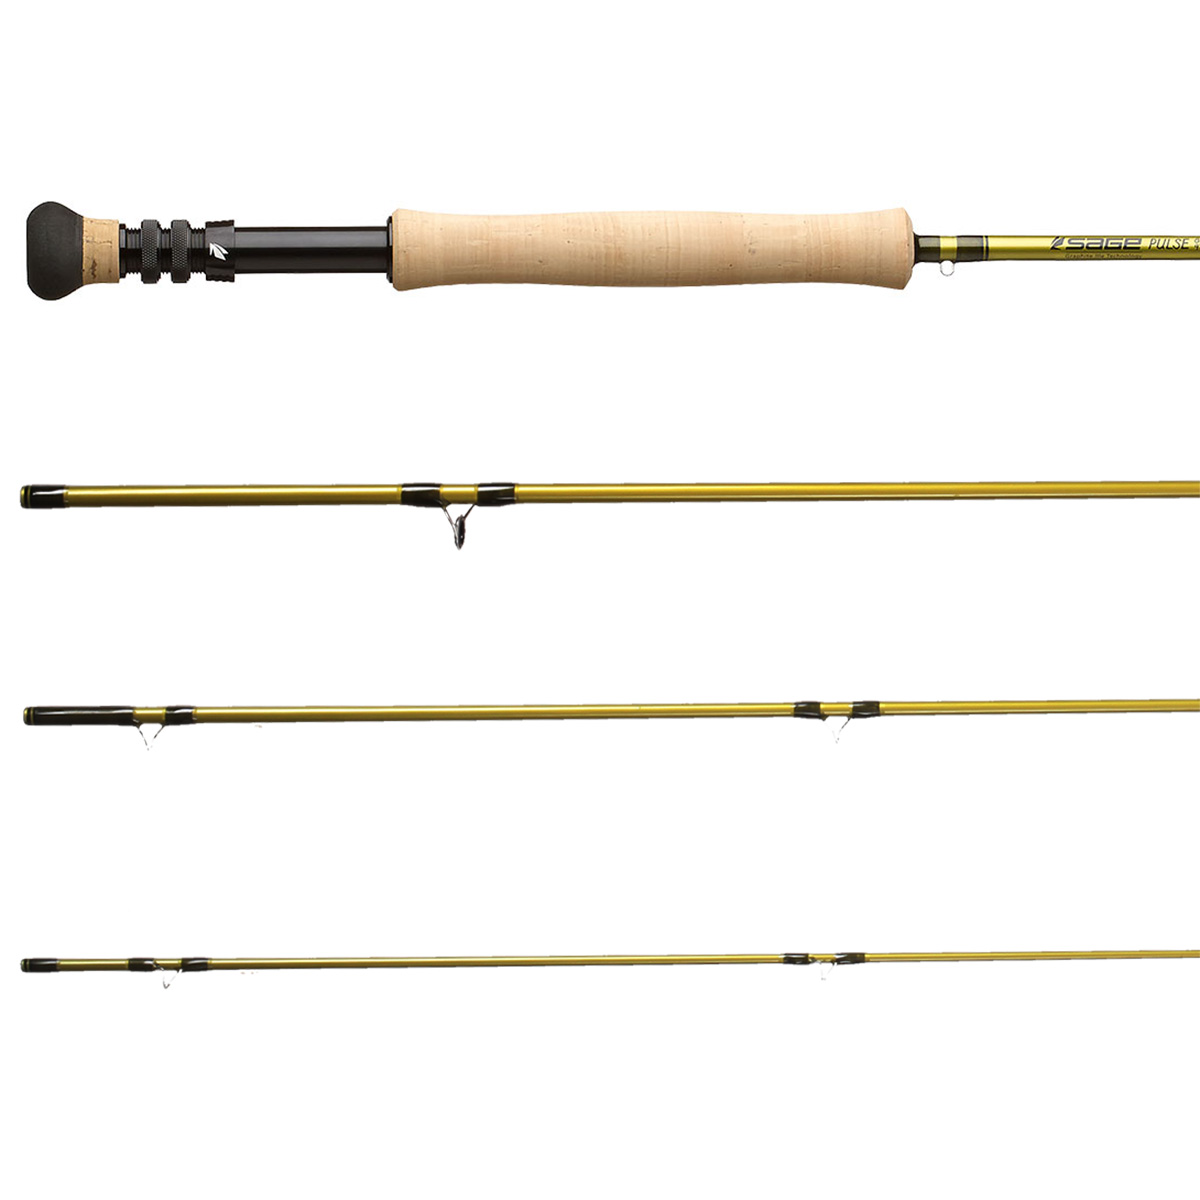 Sporting Goods > Fishing > Rods > Fly Fishing Rods Fly Fishing Rods